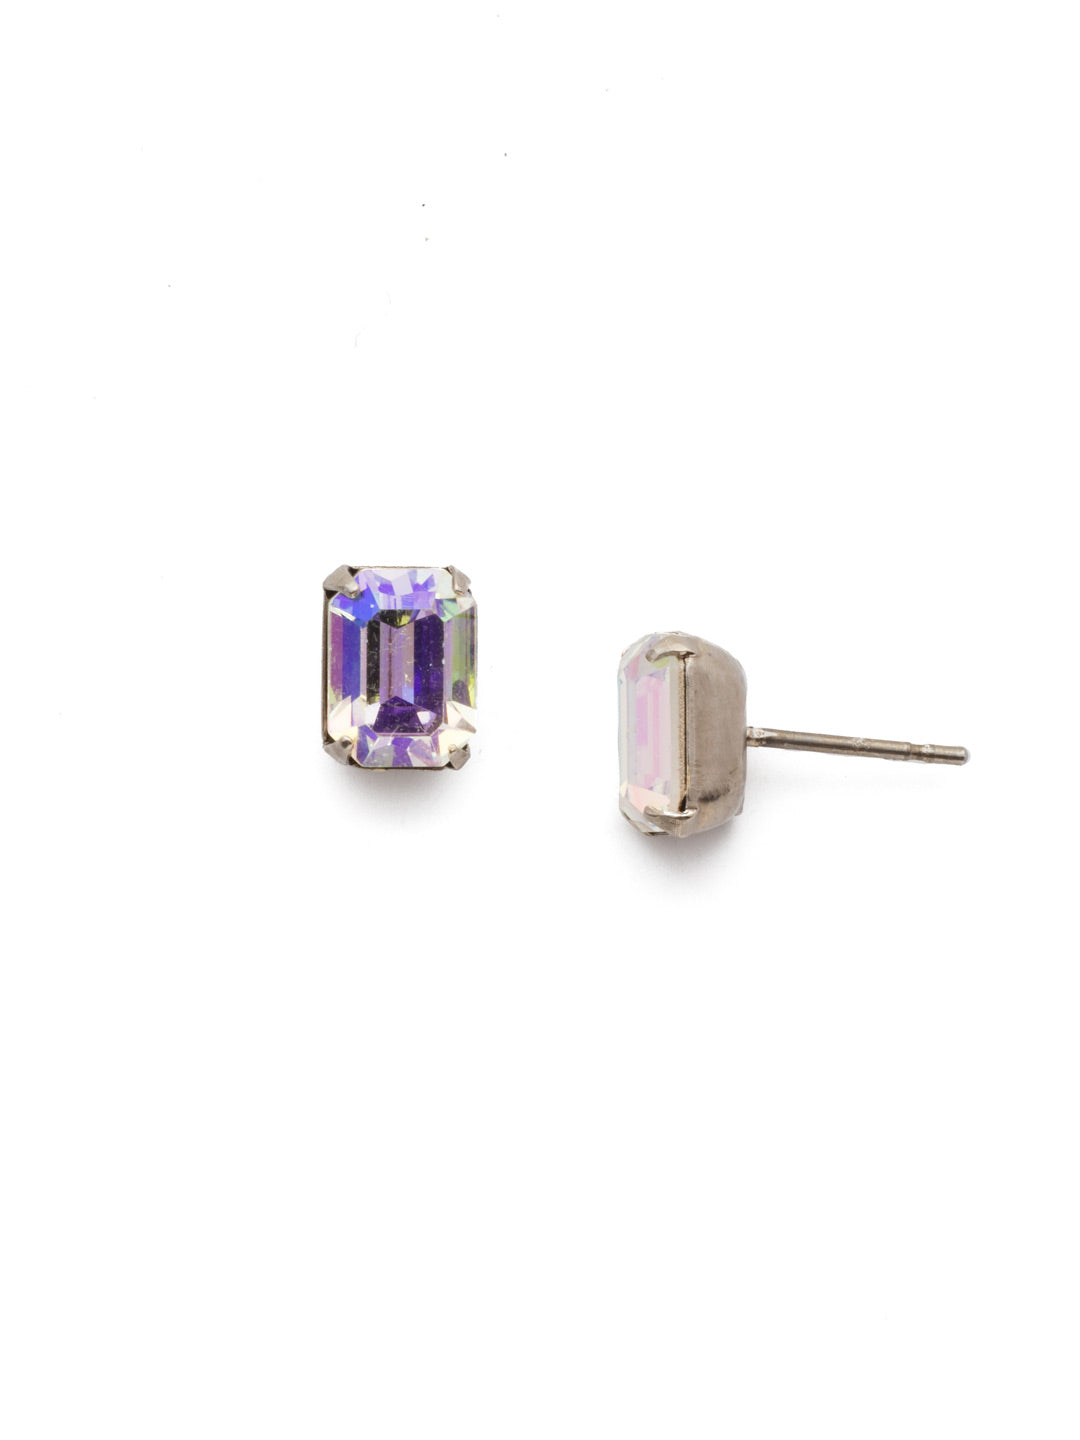 Mini Emerald Cut Stud Earrings - EBY42ASCAB